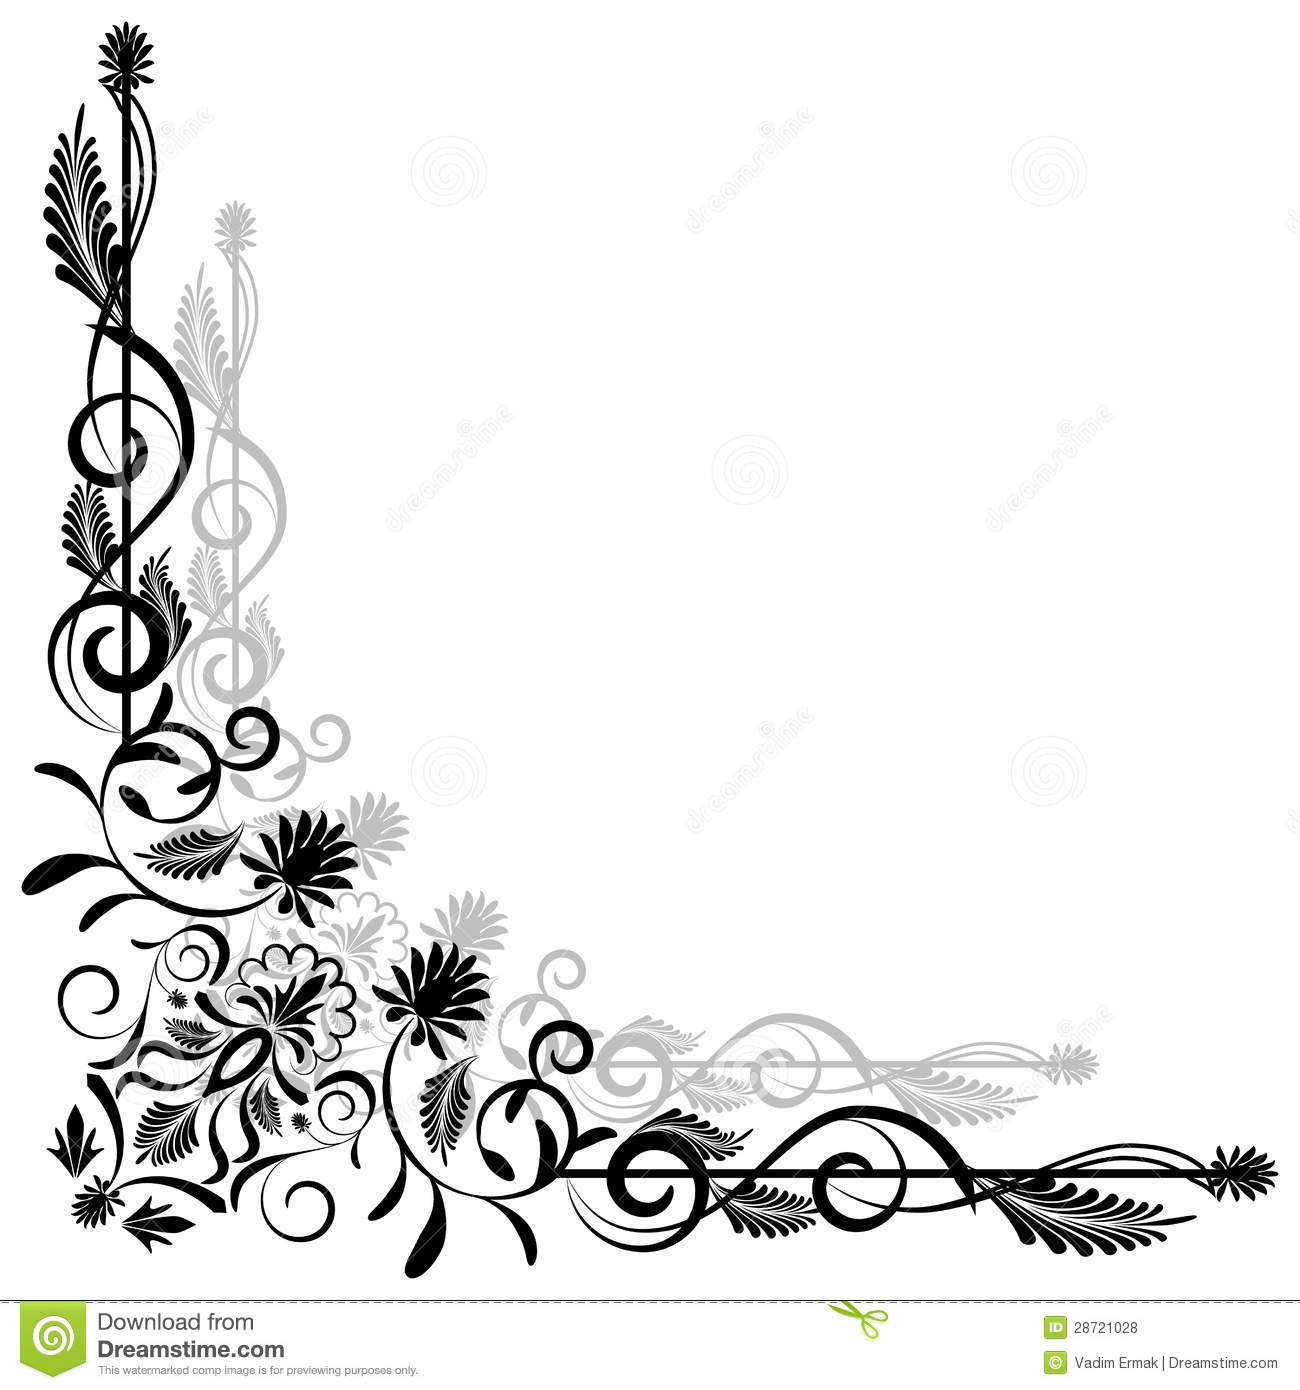 floral vector corner stock vector illustration of corner 28721028 dreamstime com